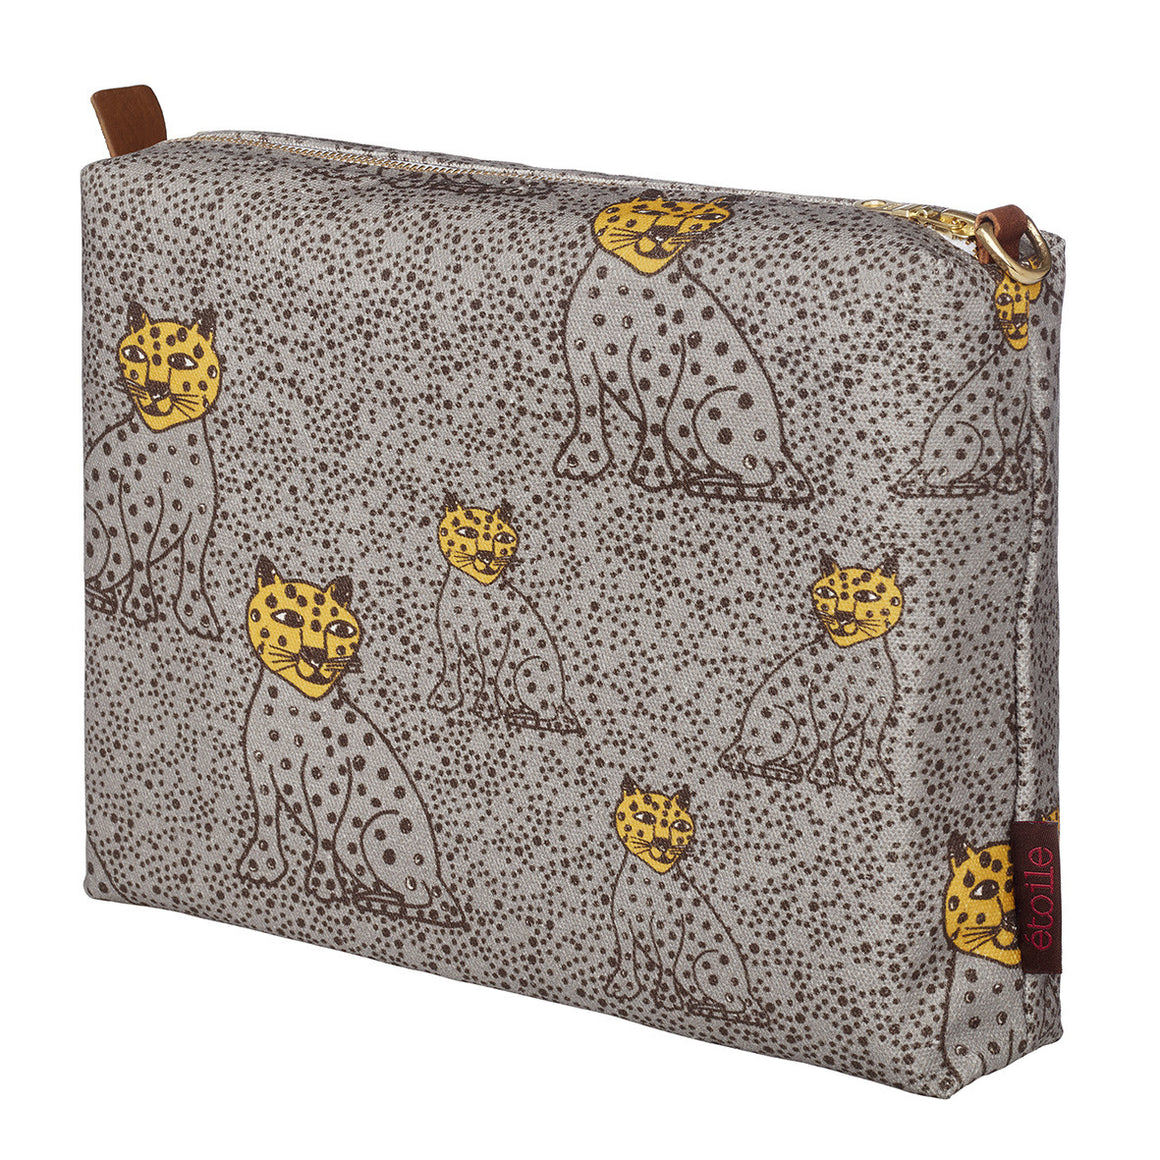 Graphic Leopard Pattern Cotton Canvas Vanity Travel Bag in Dove Grey and Saffron Yellow Perfect for all your beauty and cosmetics when travelling or at home Ships from Canada (USA)